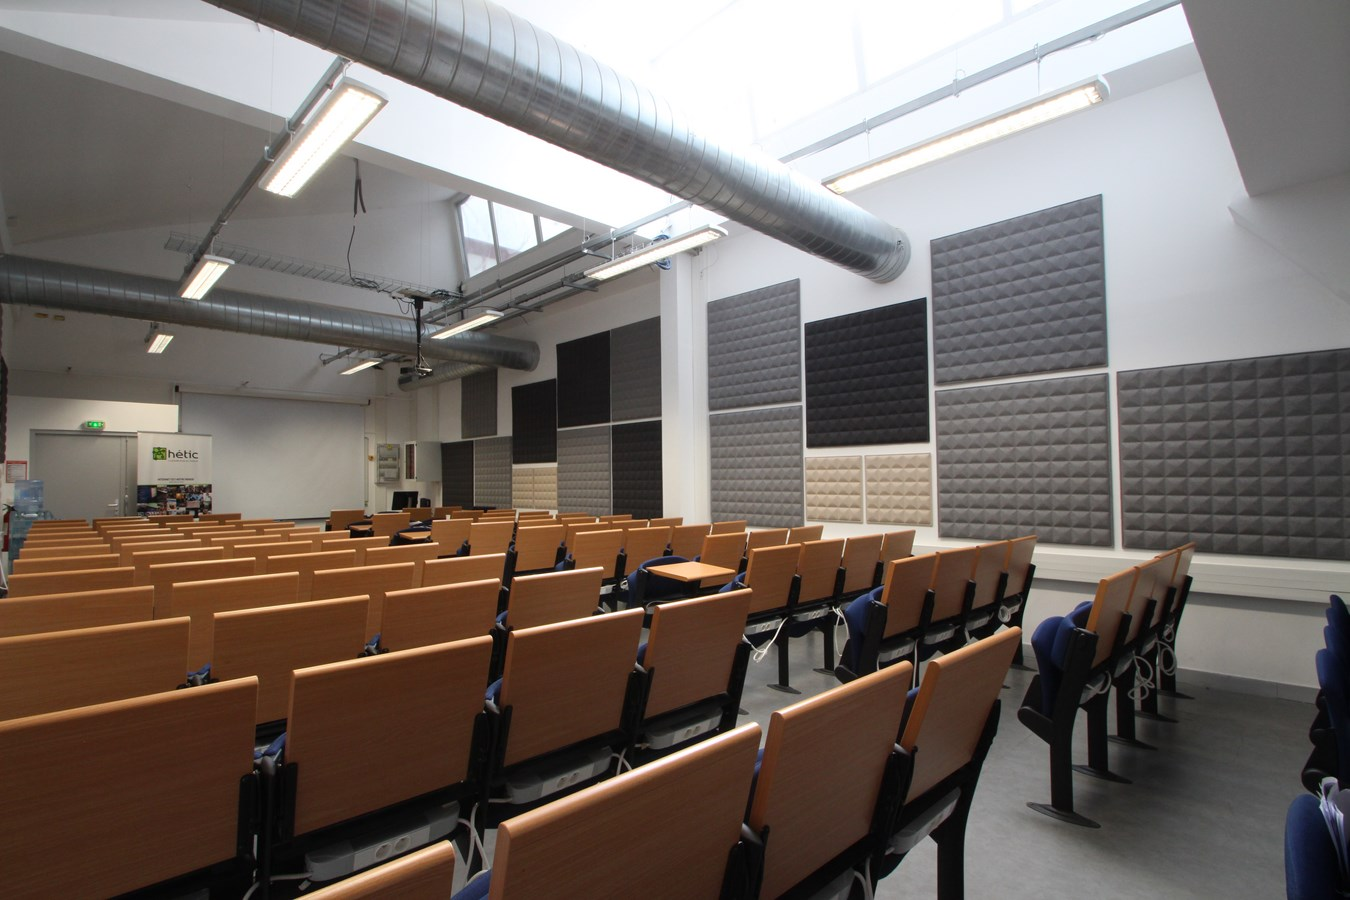 Architecture int rieur ecole audiovisuelle montreuil for Ecole architecture interieur